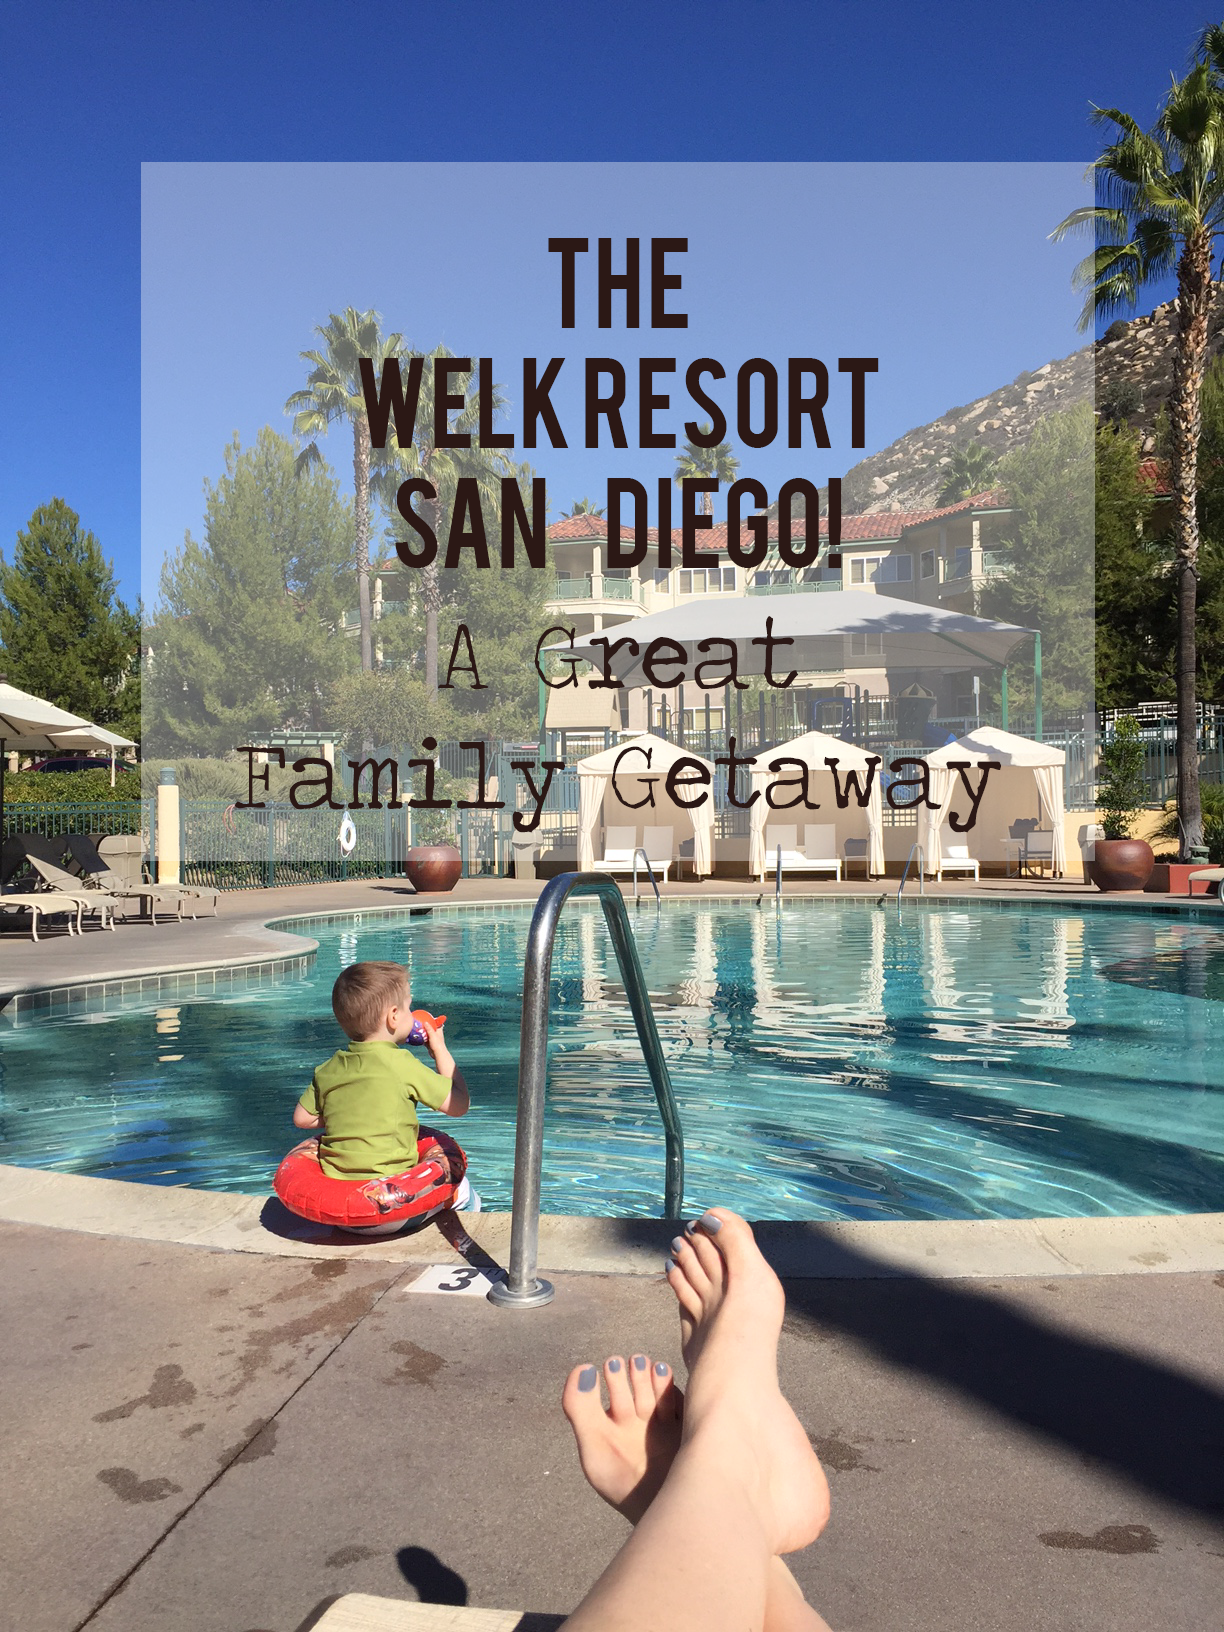 The Welk Resort San Diego For Families by Carpe Diem OUR Way